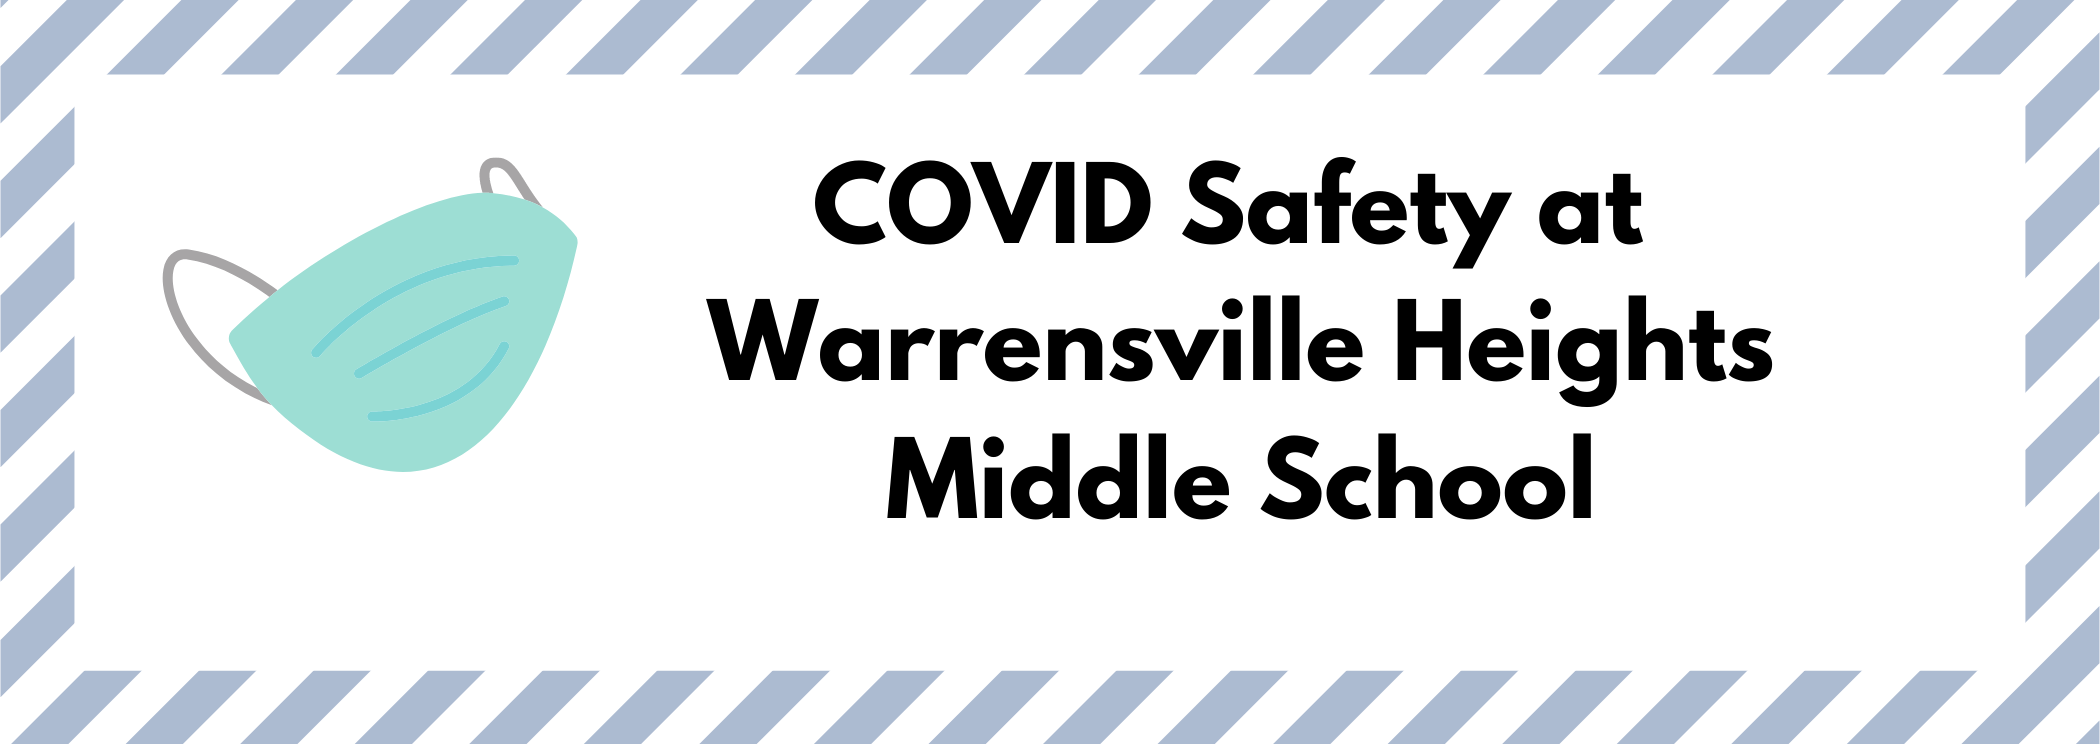 COVID safety at Warrenville Heights Middle School